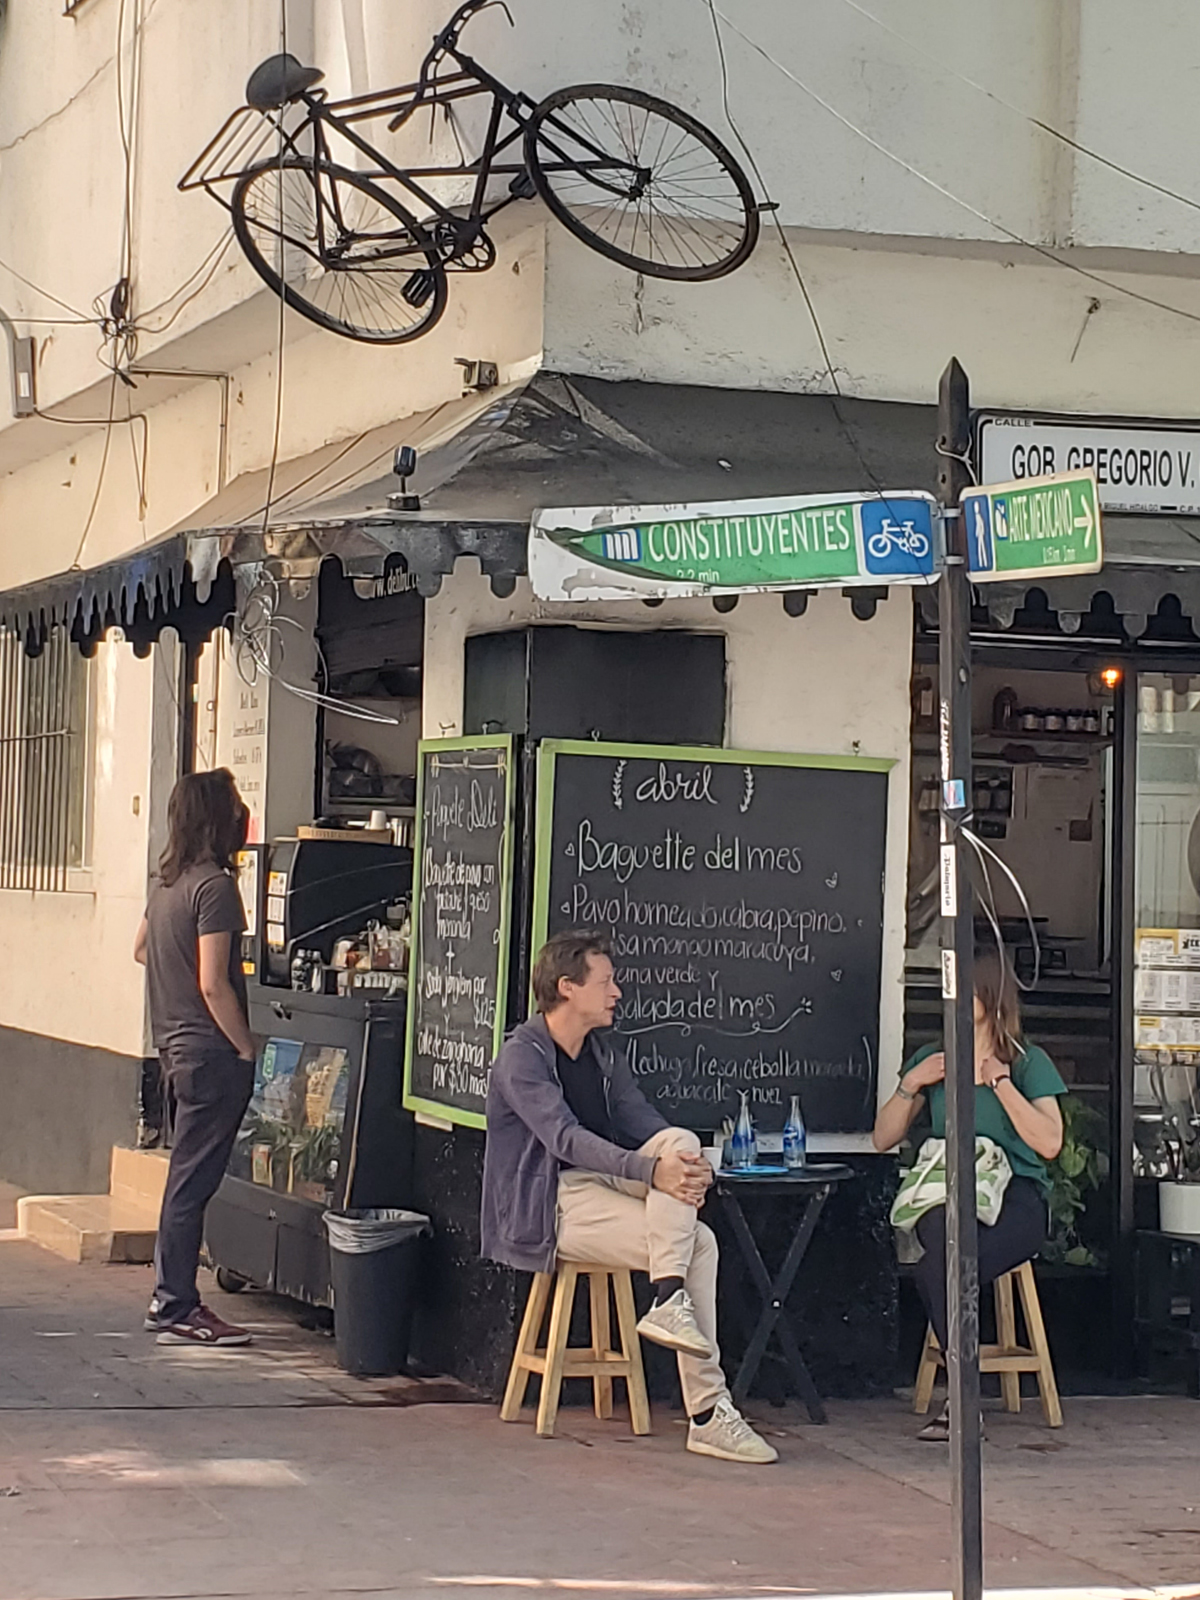 A bicycle deli on a bicycle street. Photo by David Ward